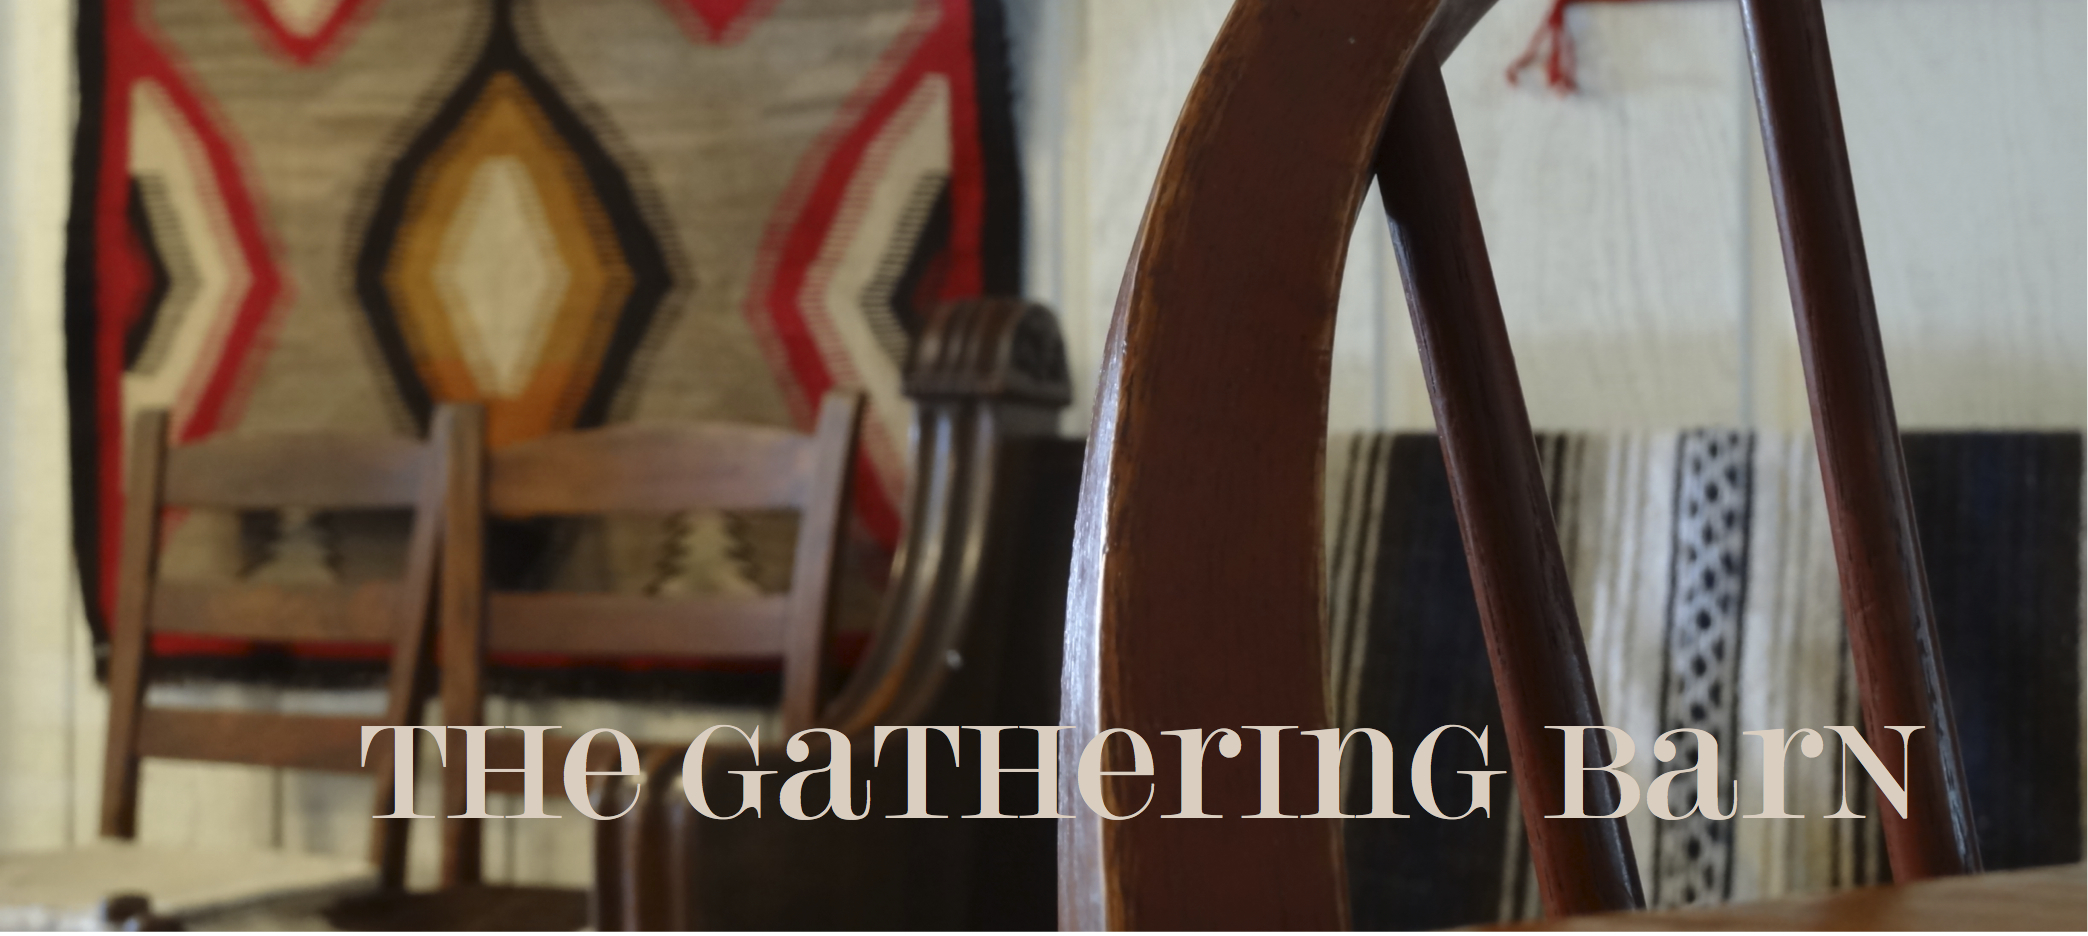 The Gathering Barn is the perfect spot for your next party, bridal or baby shower, meeting or special event. Call us to inquire about rates and availability.